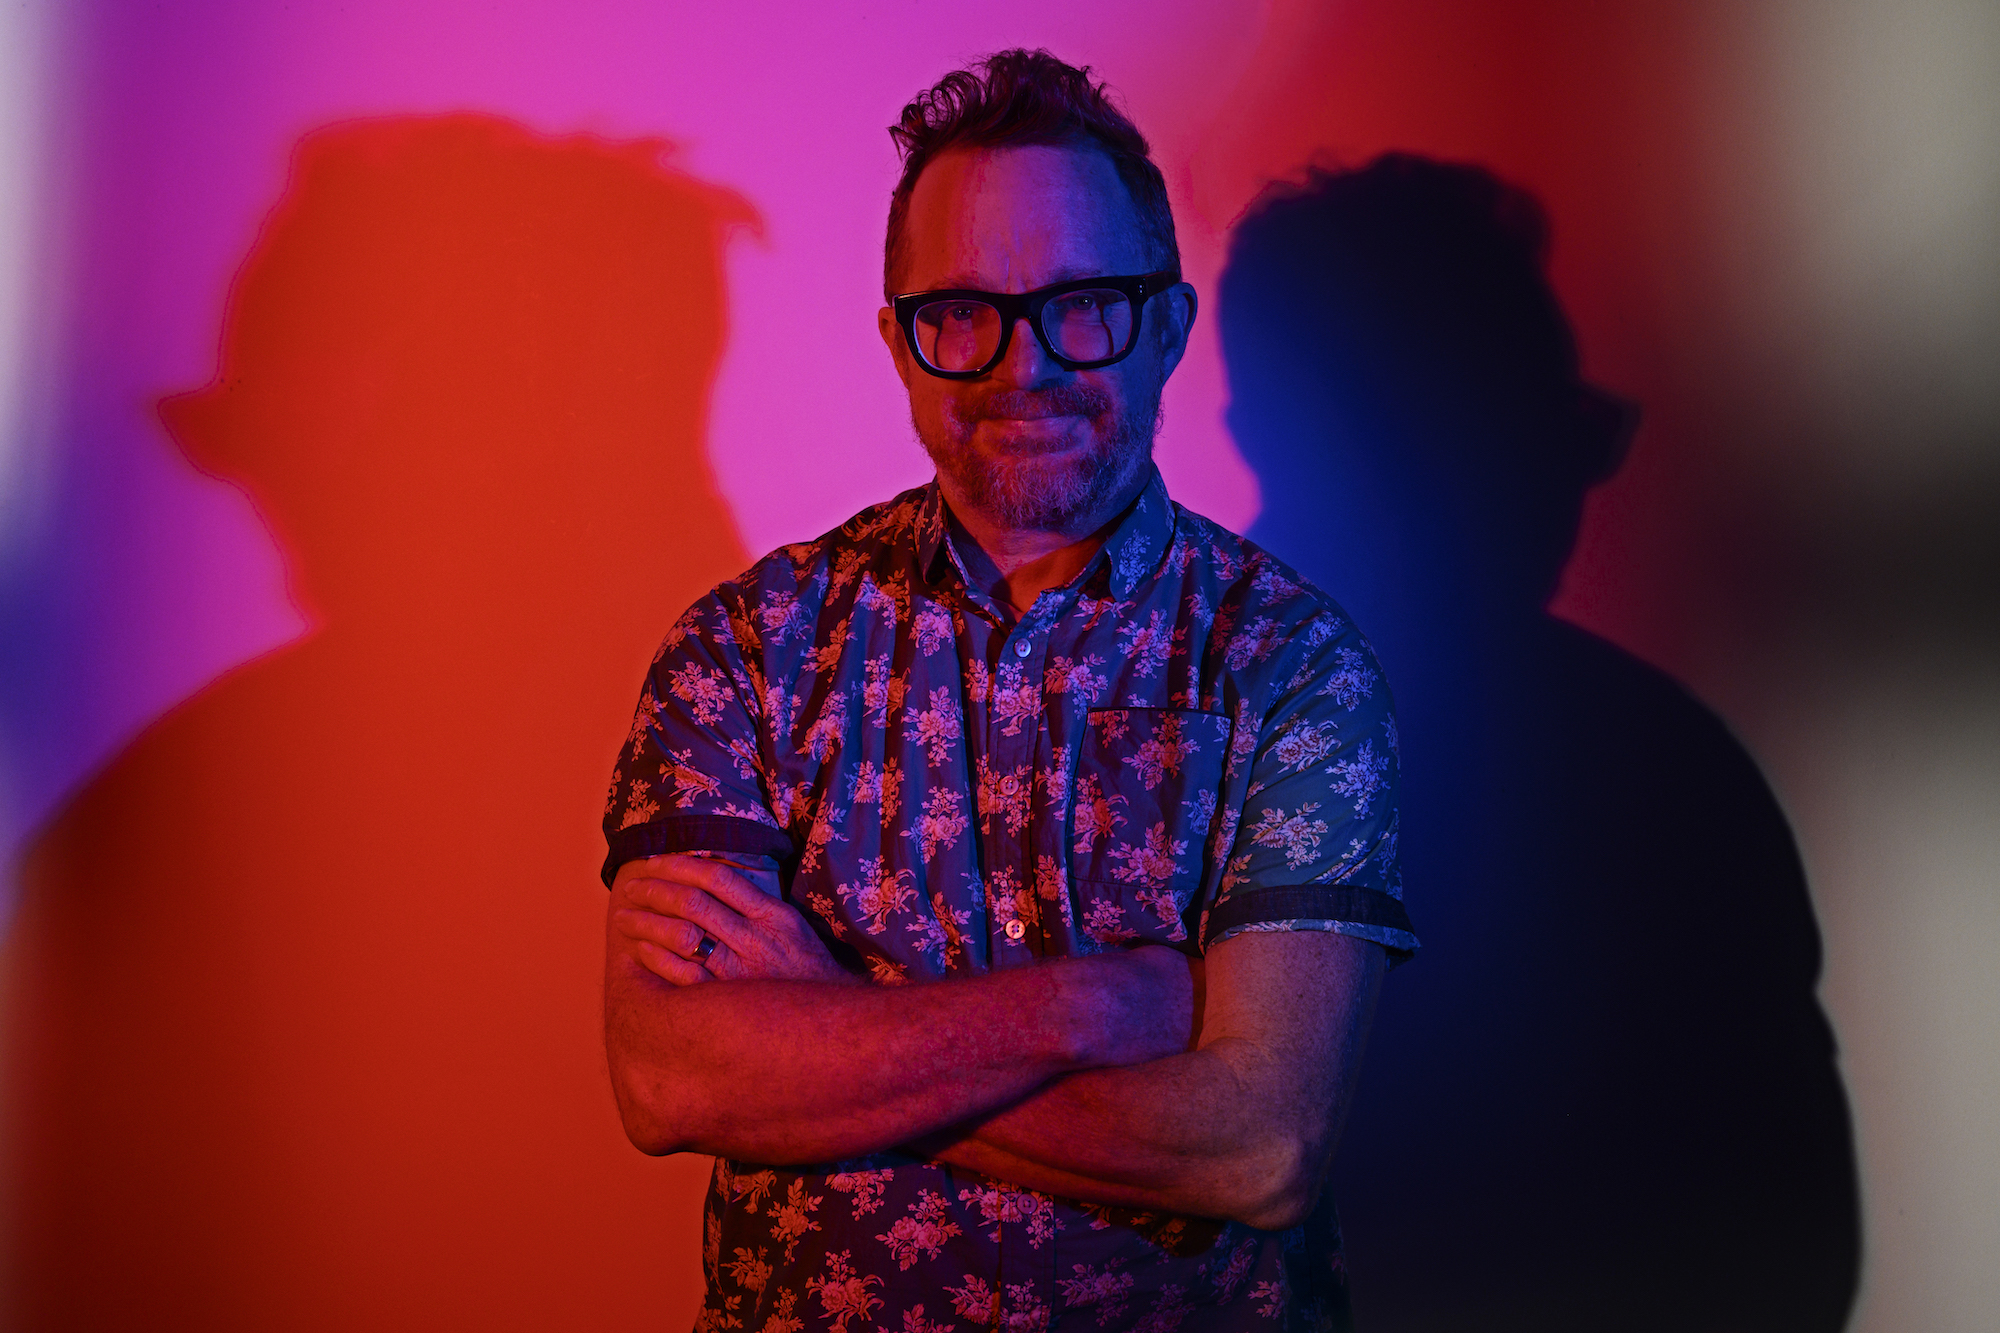 A man in a floral shirt and thick framed glasses is lit by dramatic pink lights.